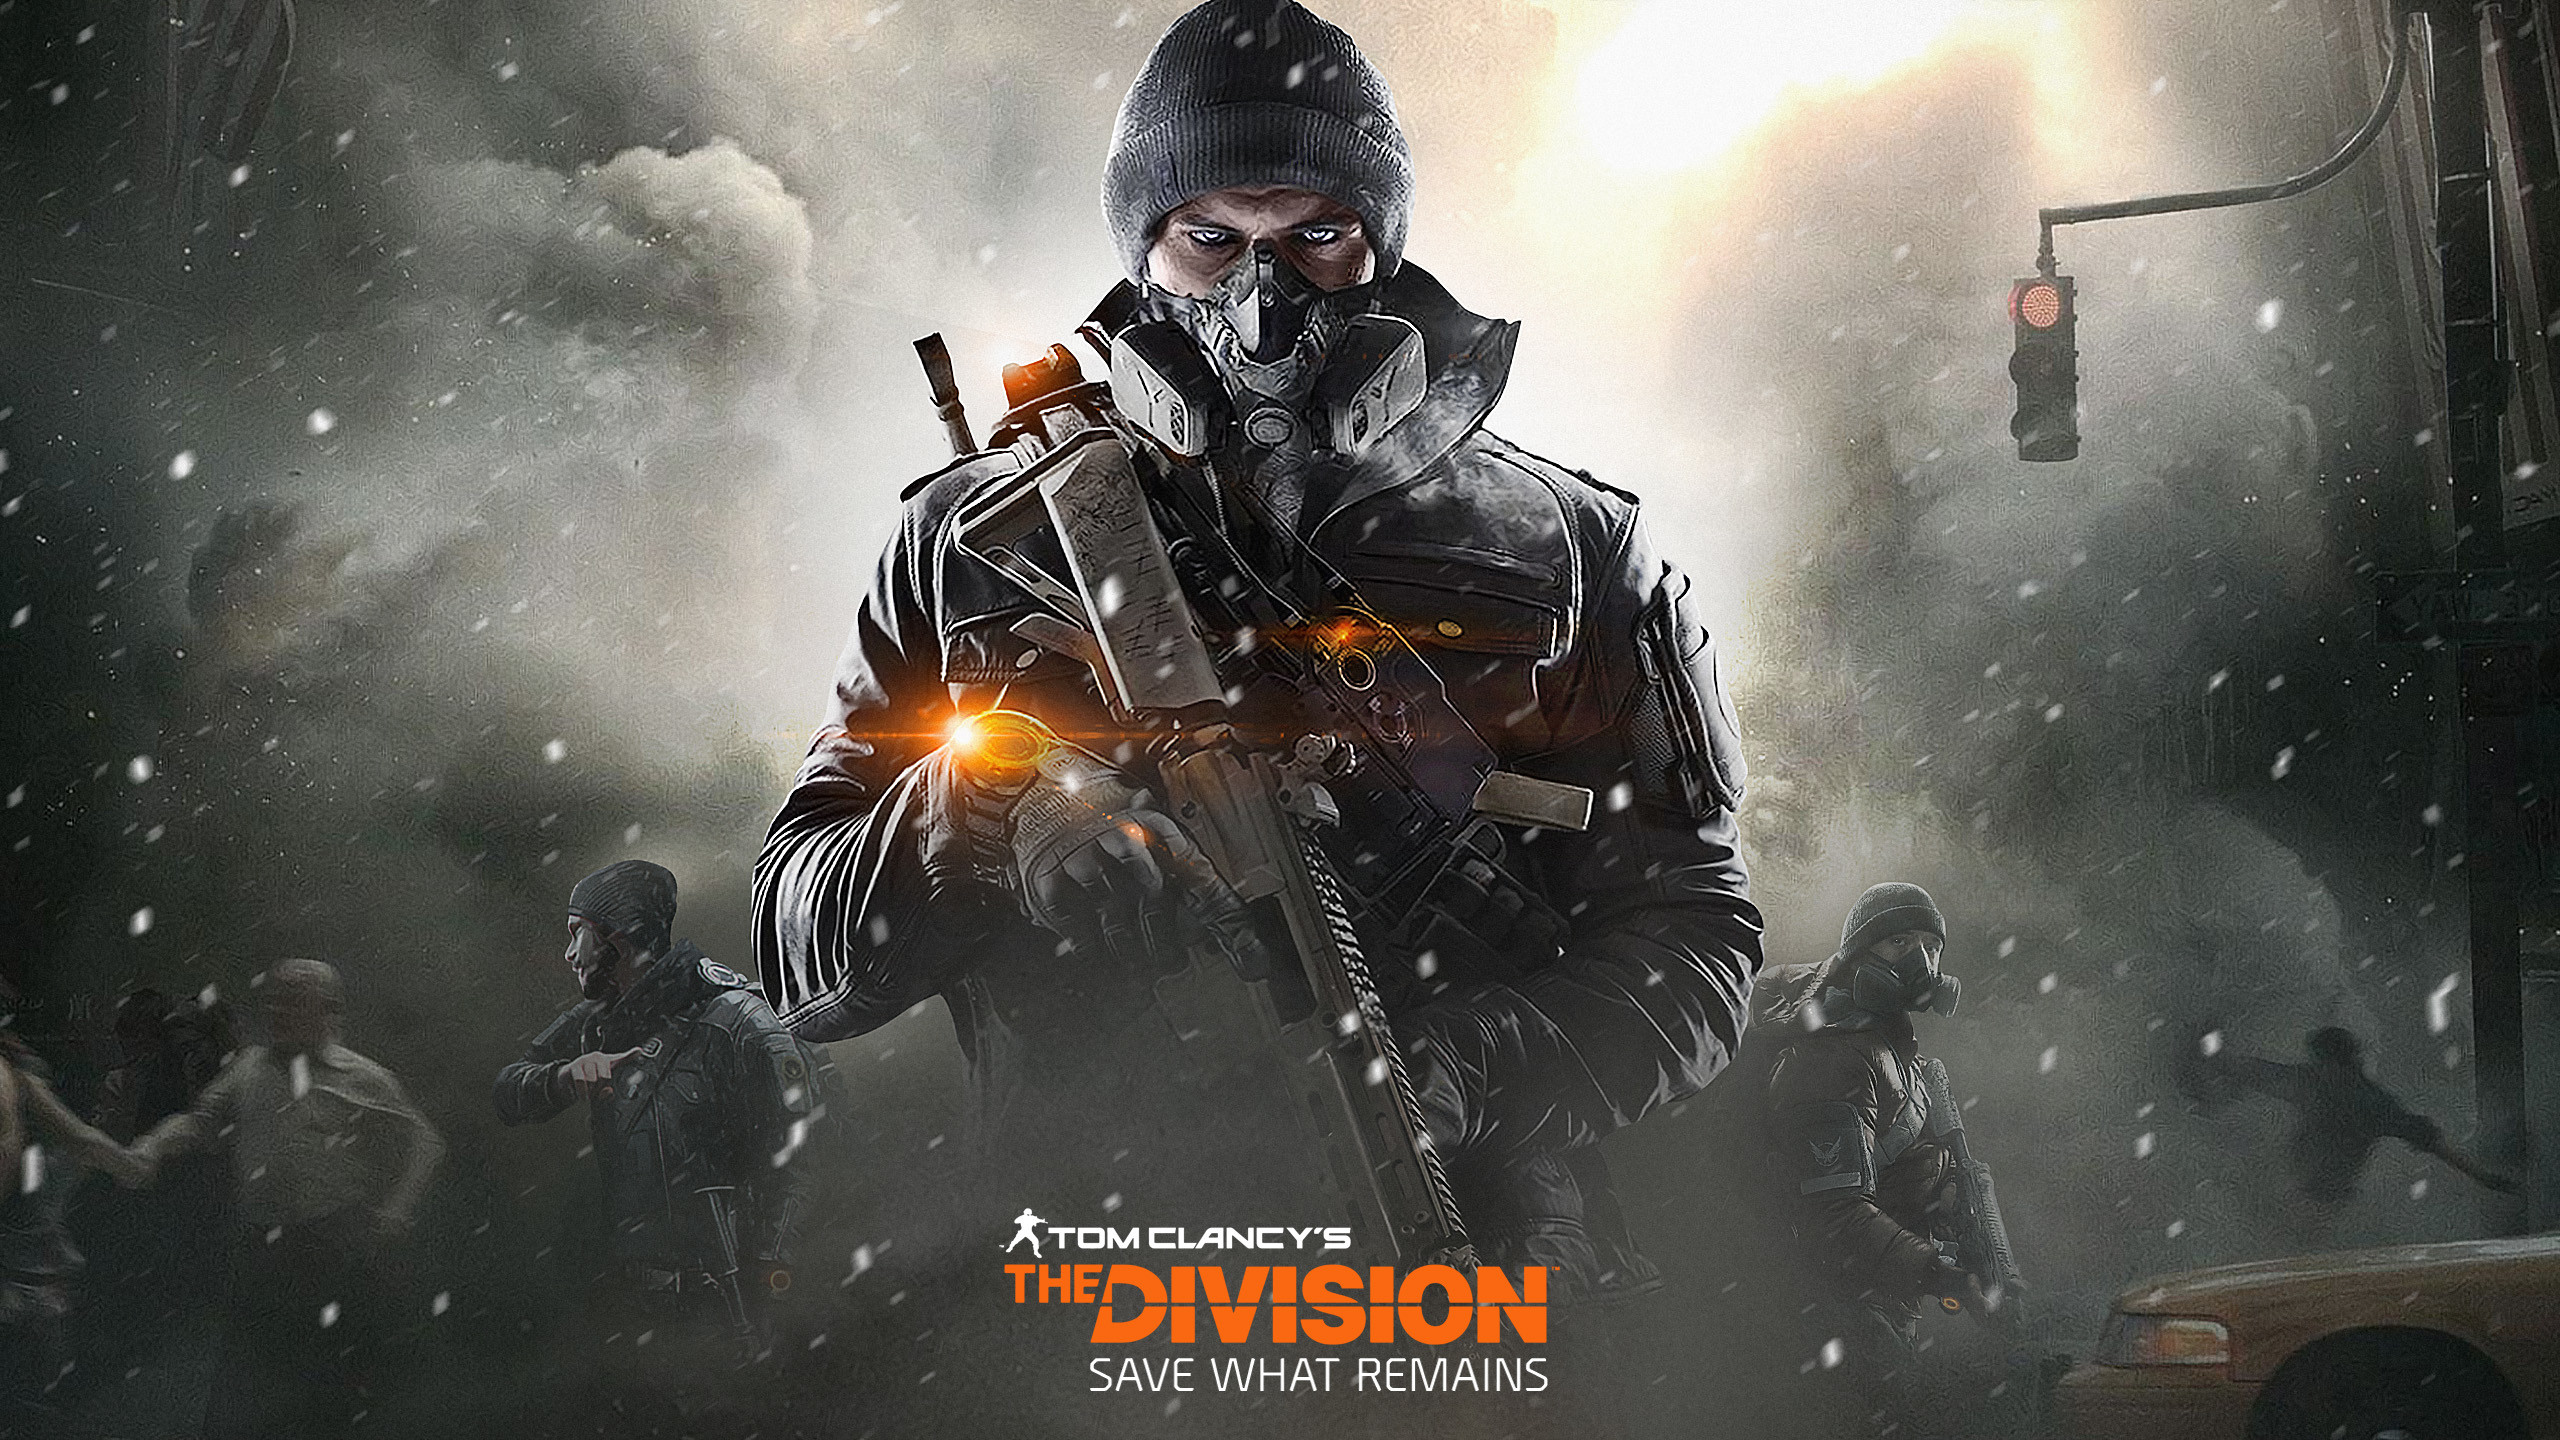 The Division 4k Wallpaper 76 Images